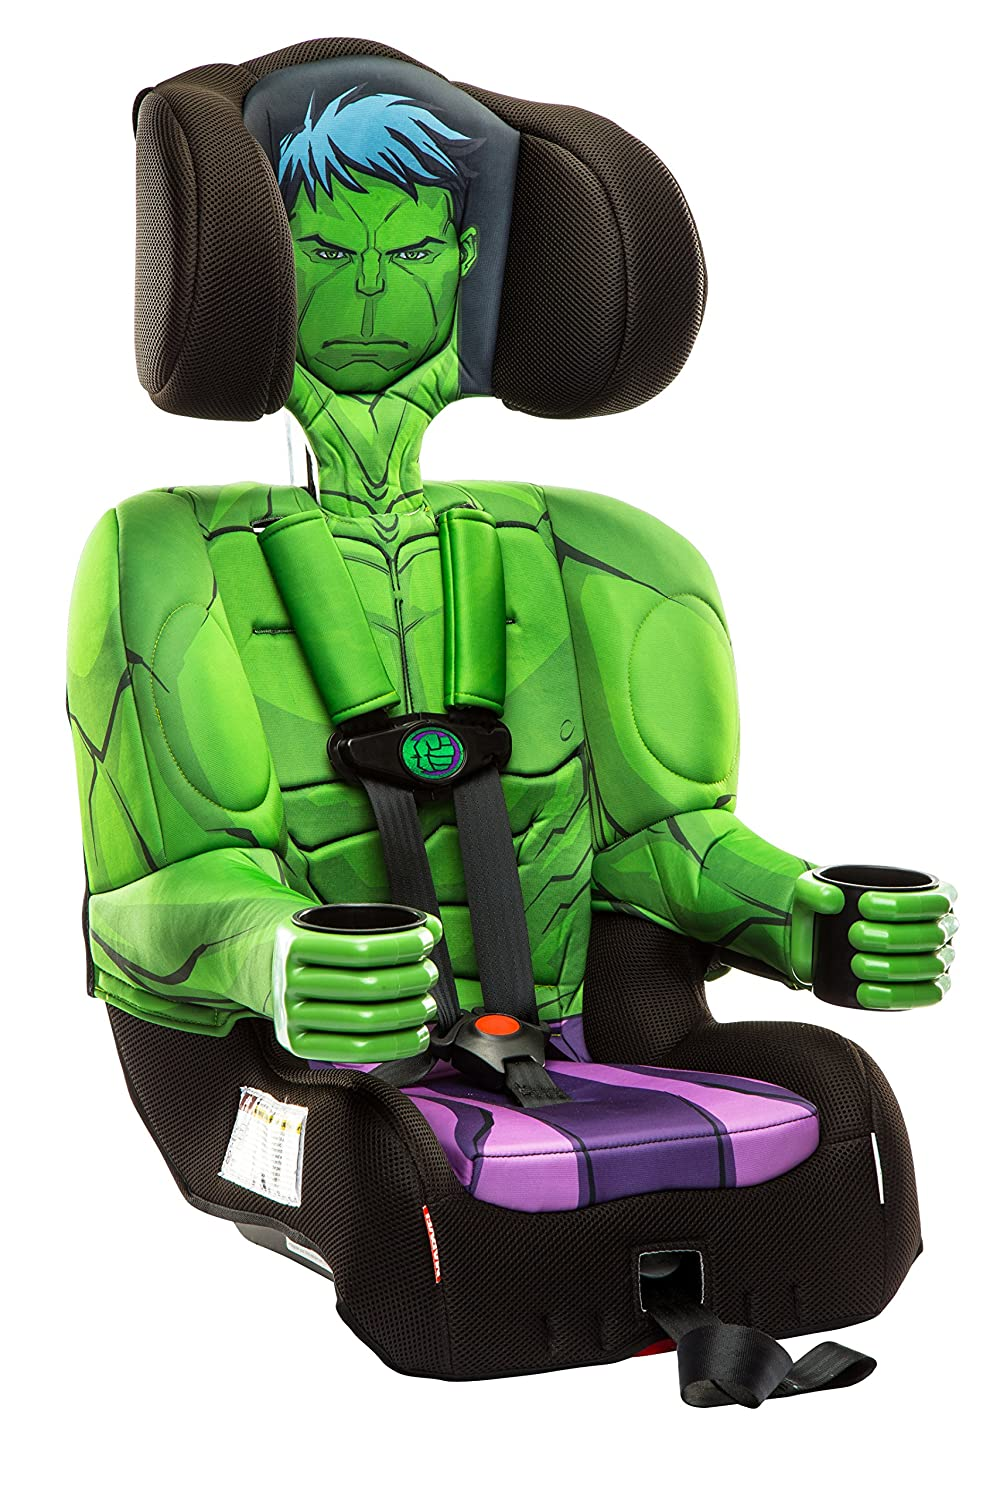 KidsEmbrace Incredible Hulk Booster Car Seat Marvel Avengers Combination 5 Point Harness